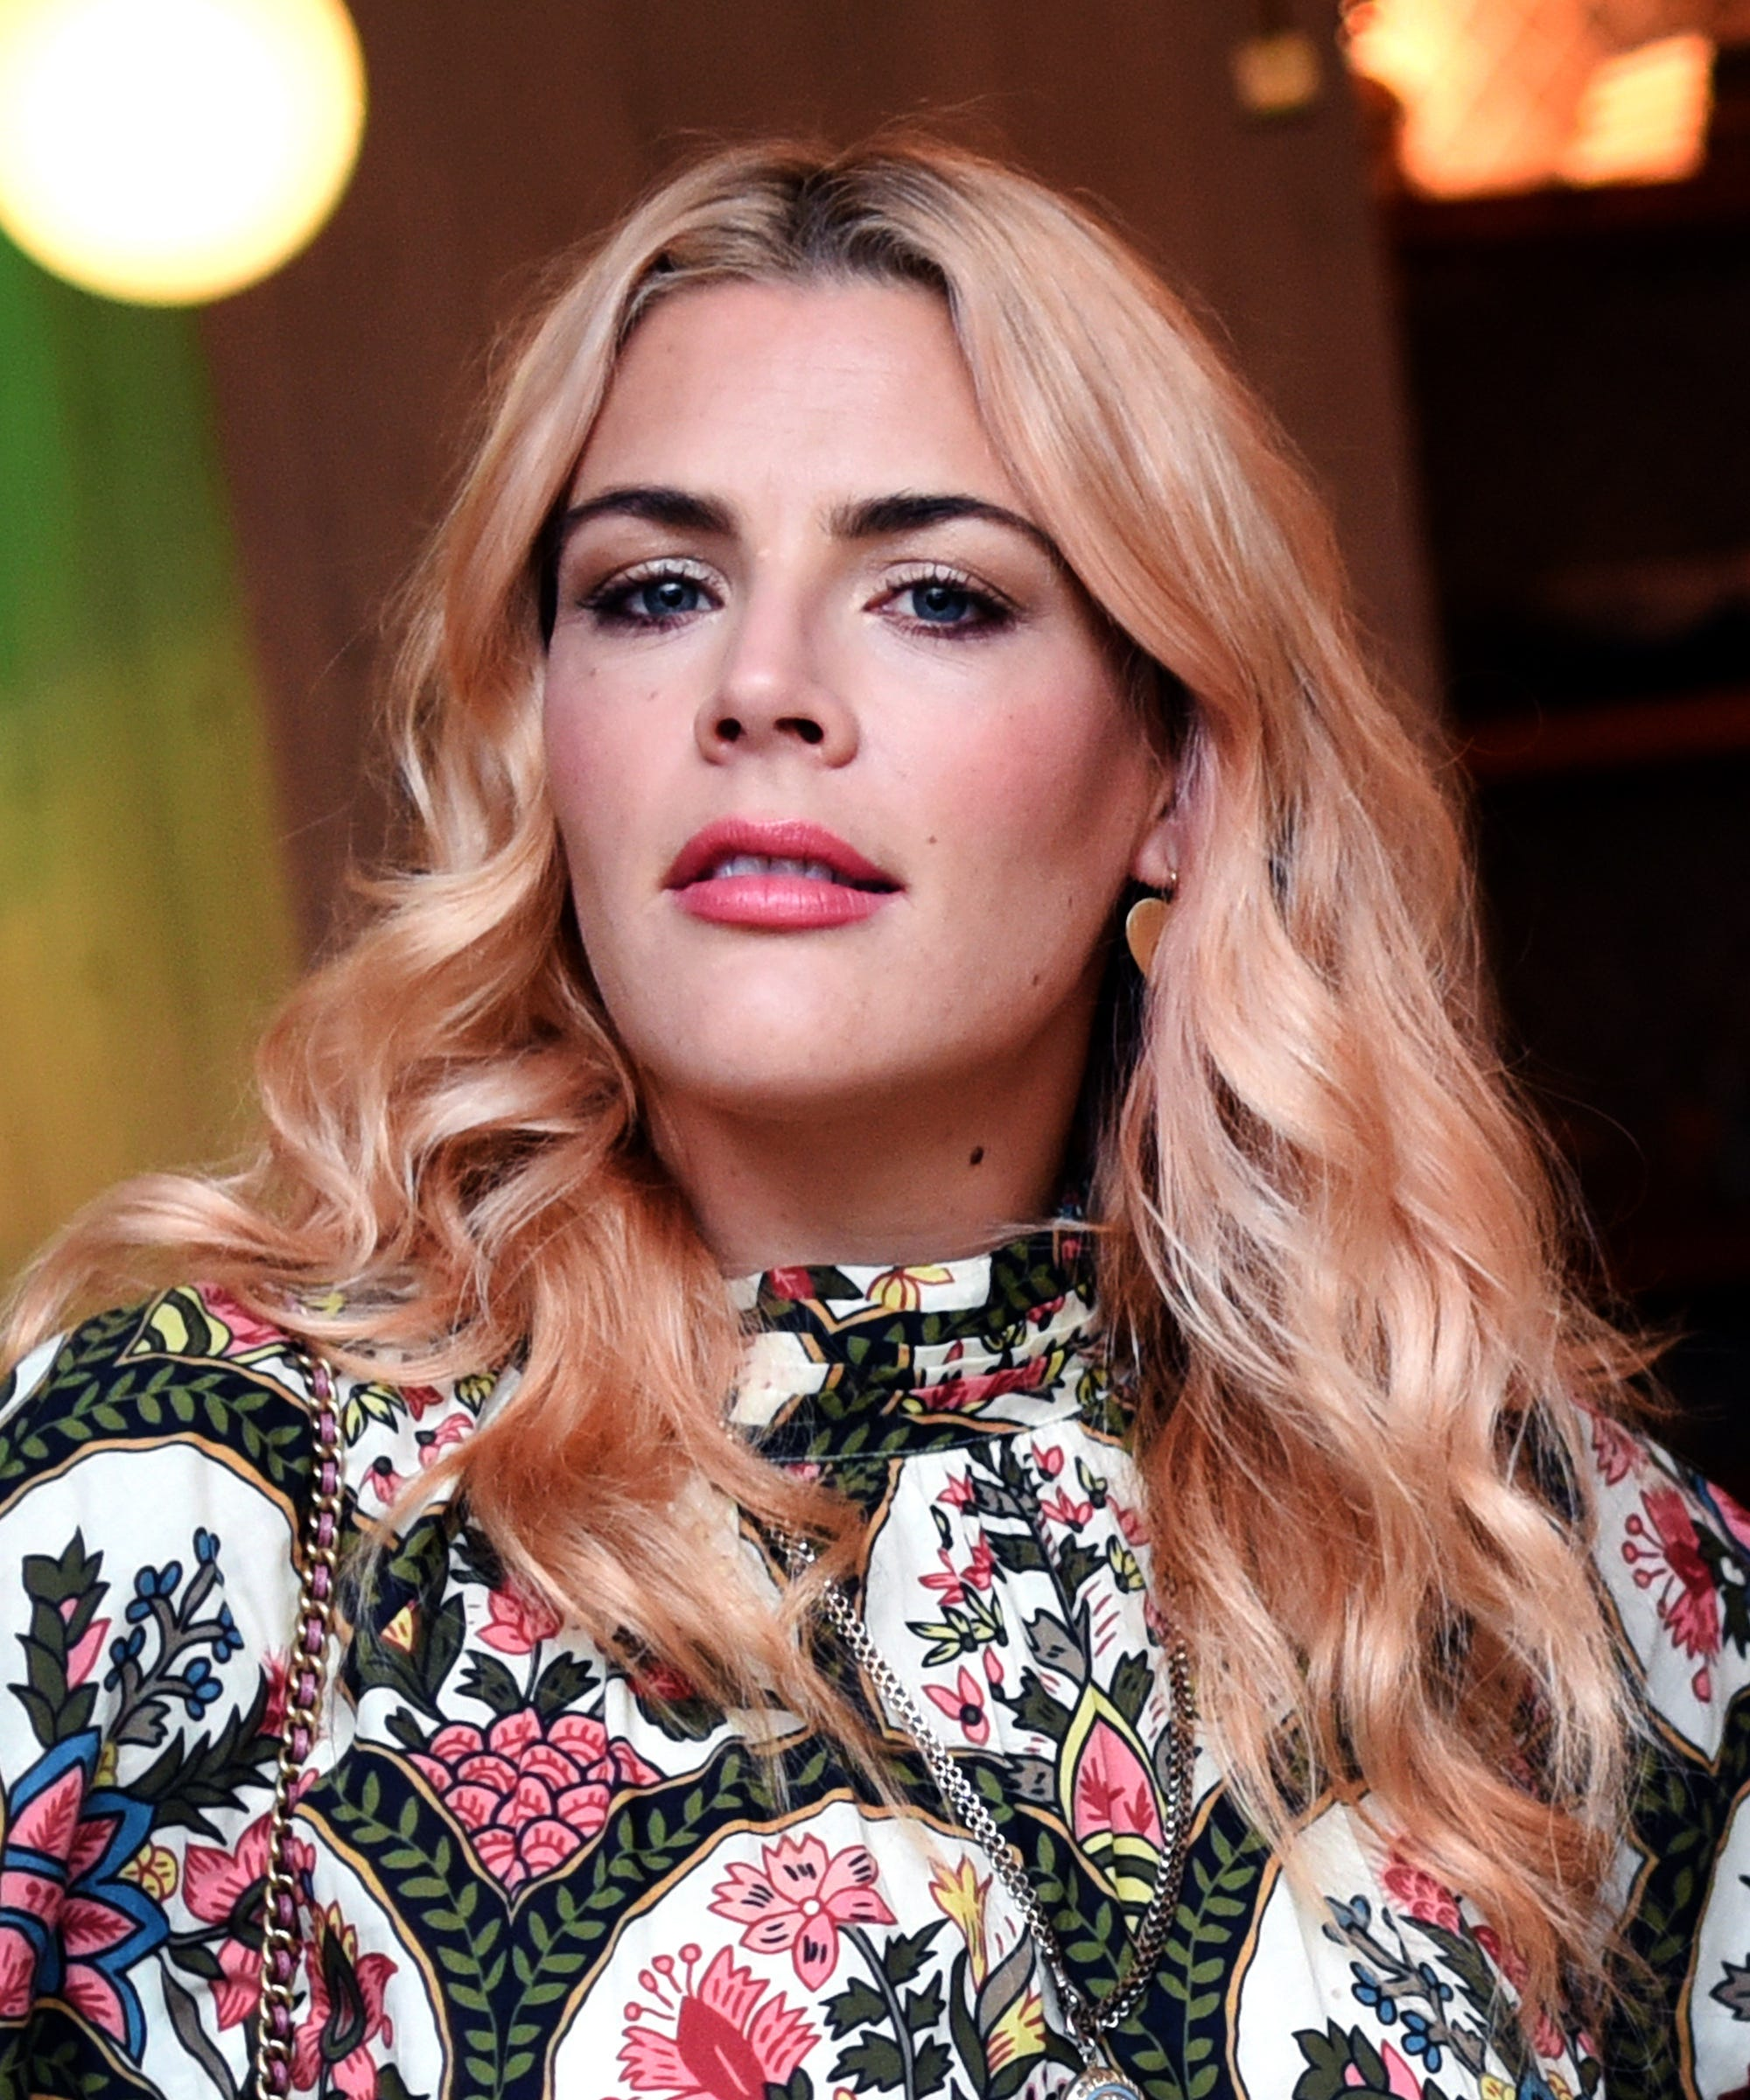 Busy Philipps May Have Figured Out Why Lori Loughlin Got Caught Up In The College Scam